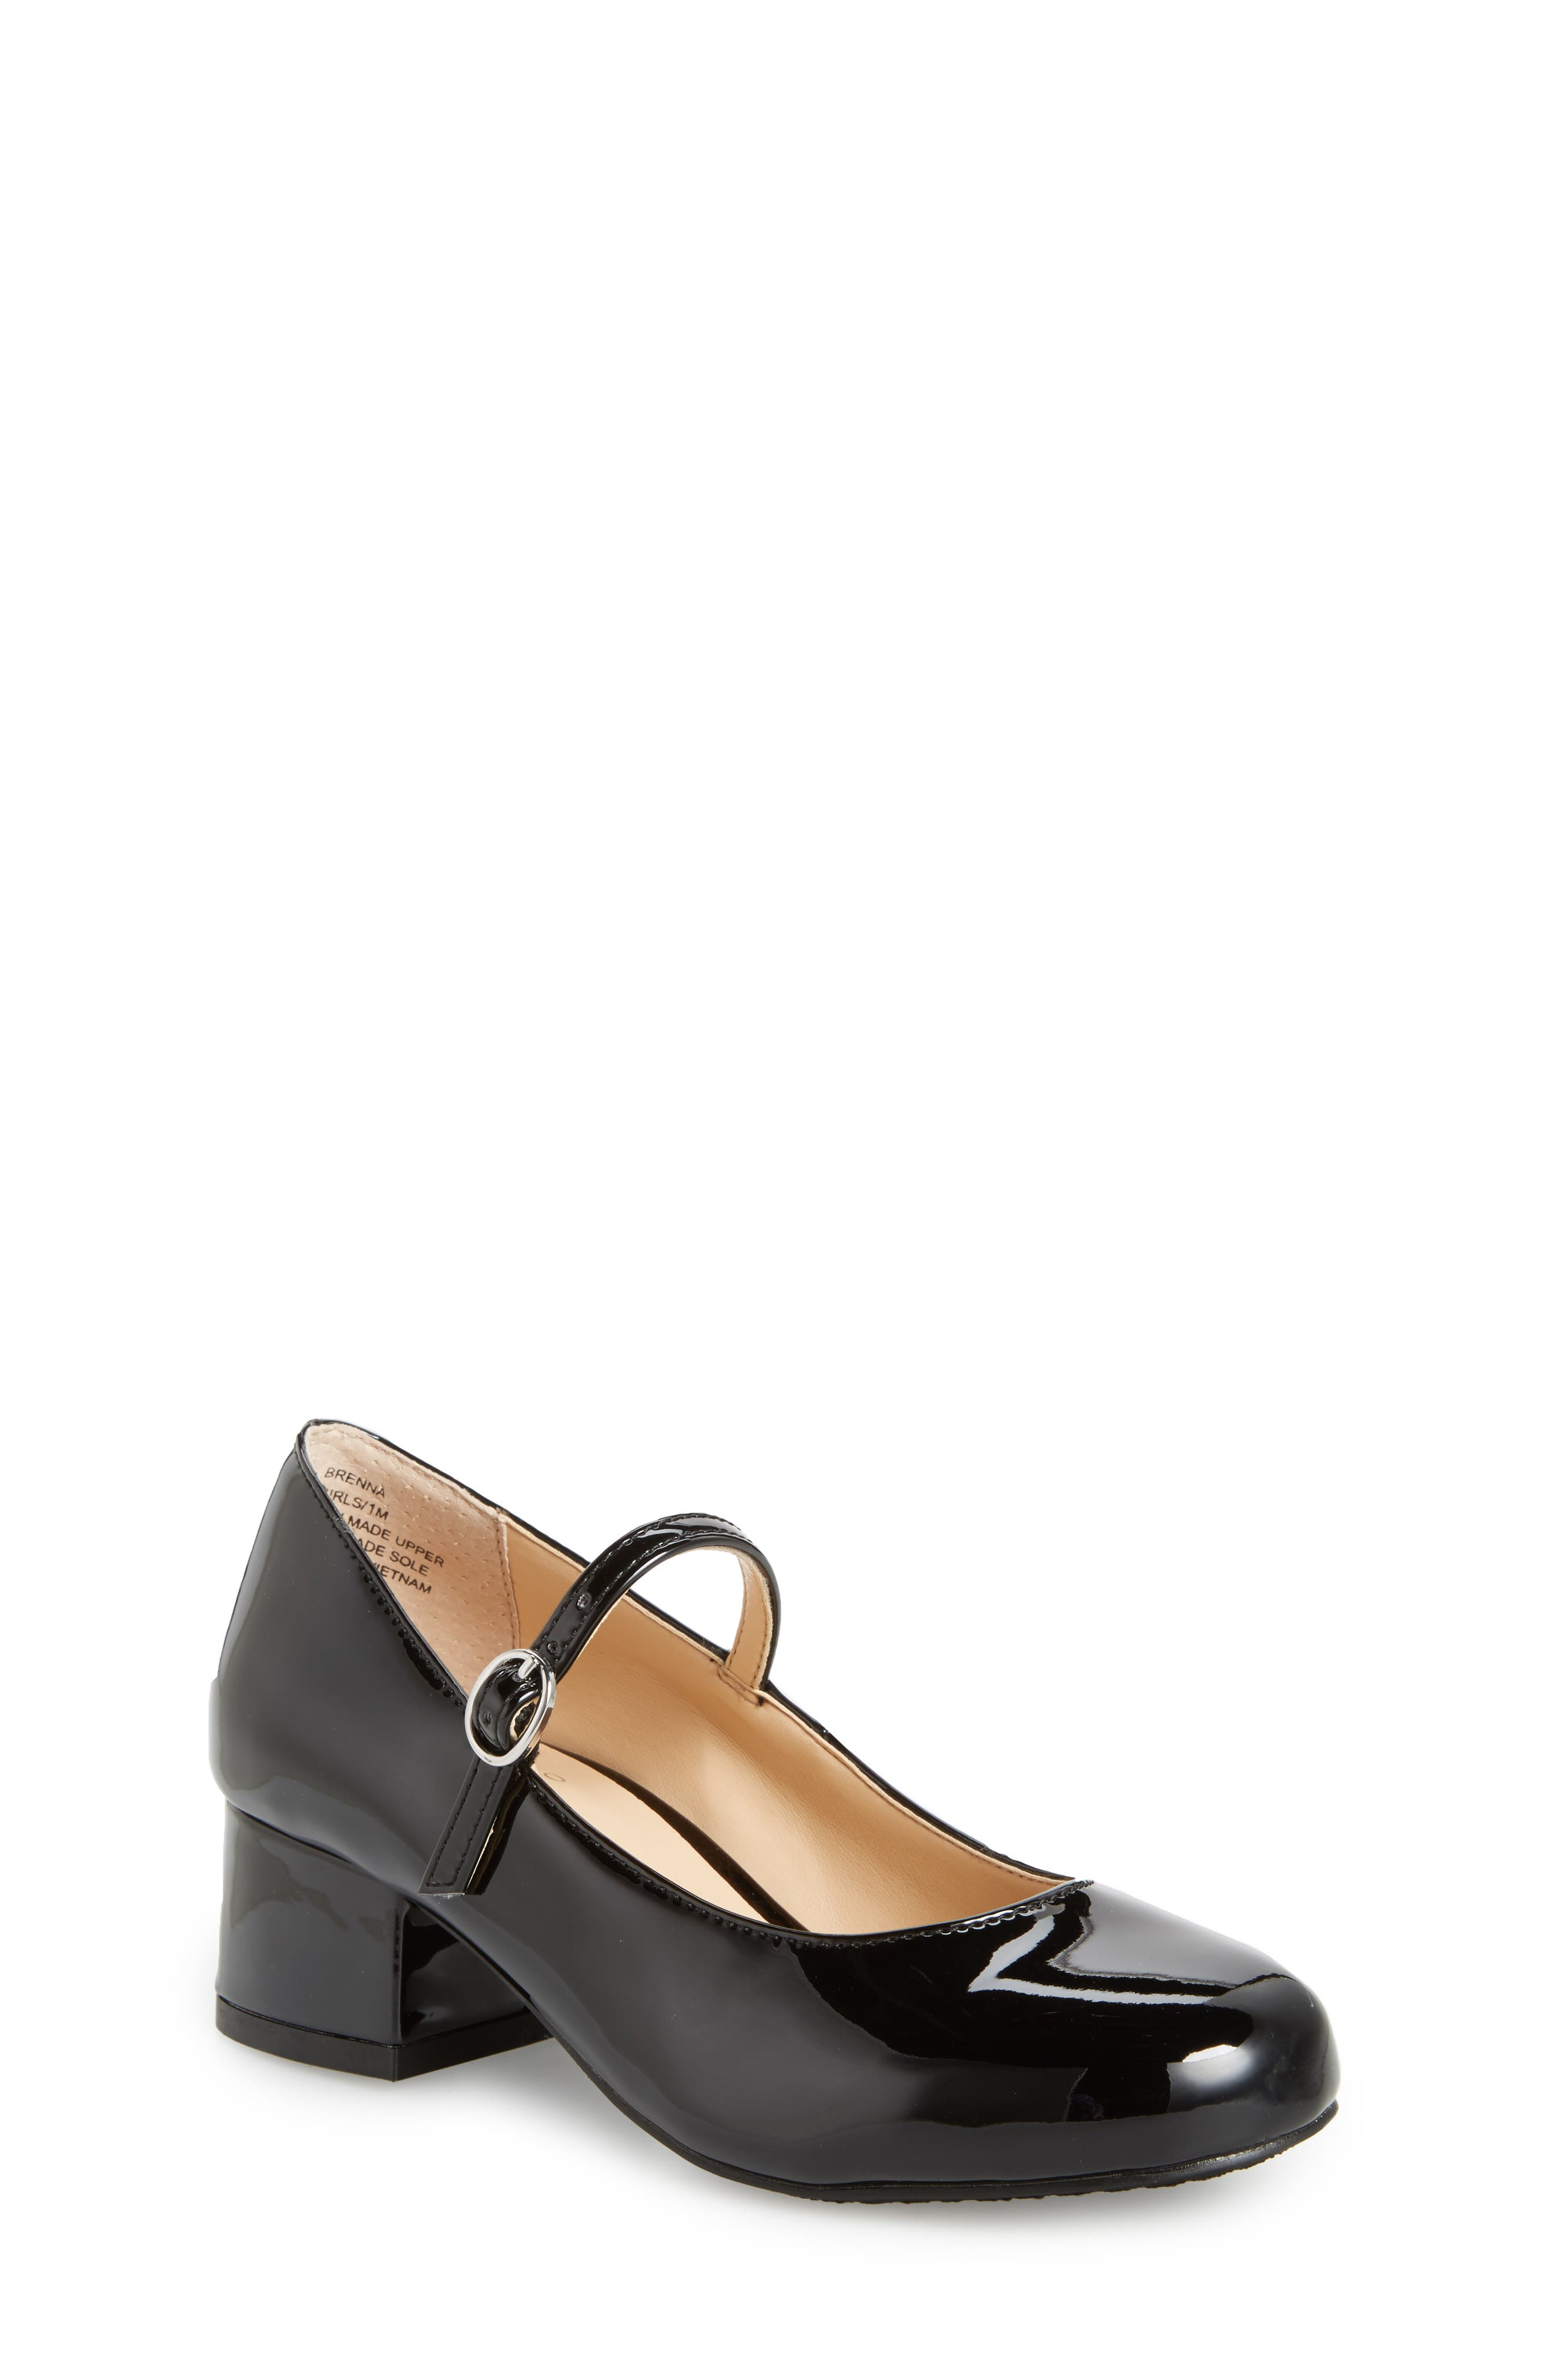 Vince Camuto Brenna Mary Jane Pump (Toddler, Little Kid & Big Kid)